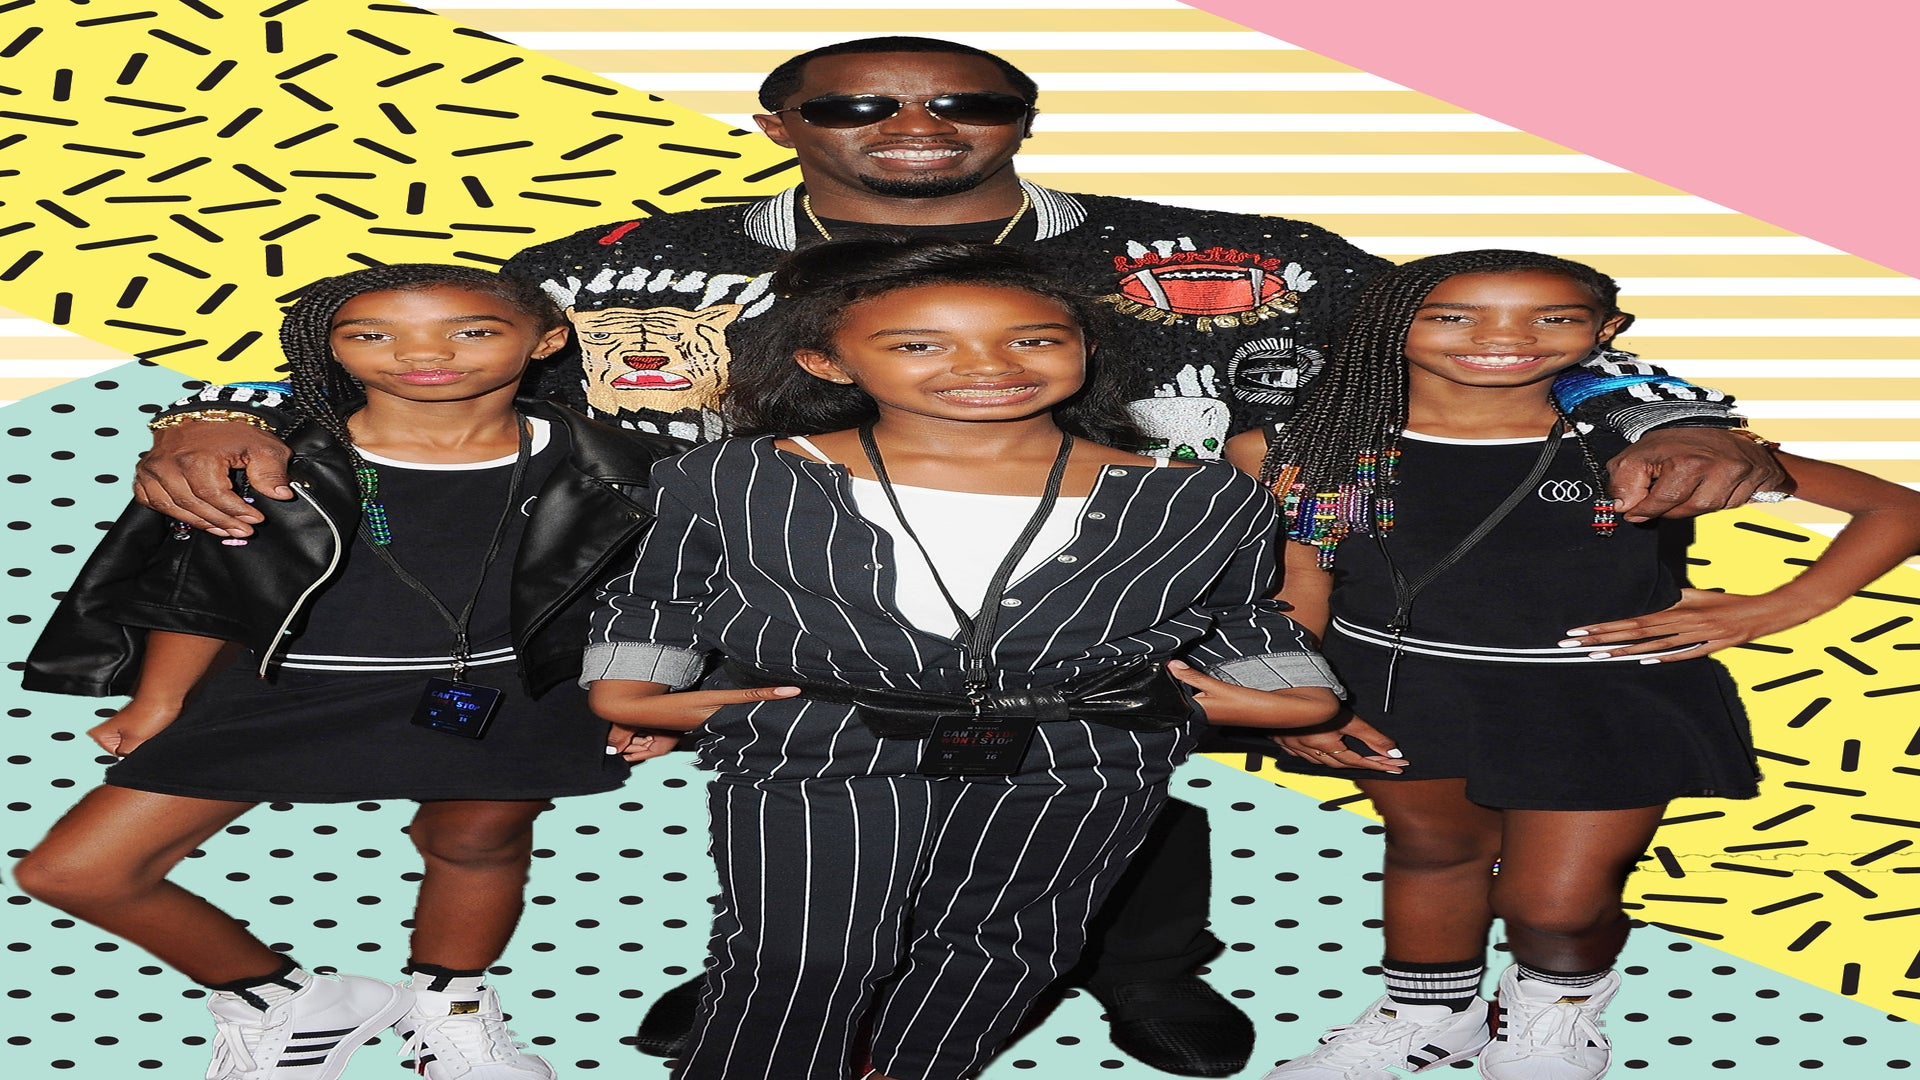 Diddy Is The Personal Hype Man To His Daughters In This Adorable Video